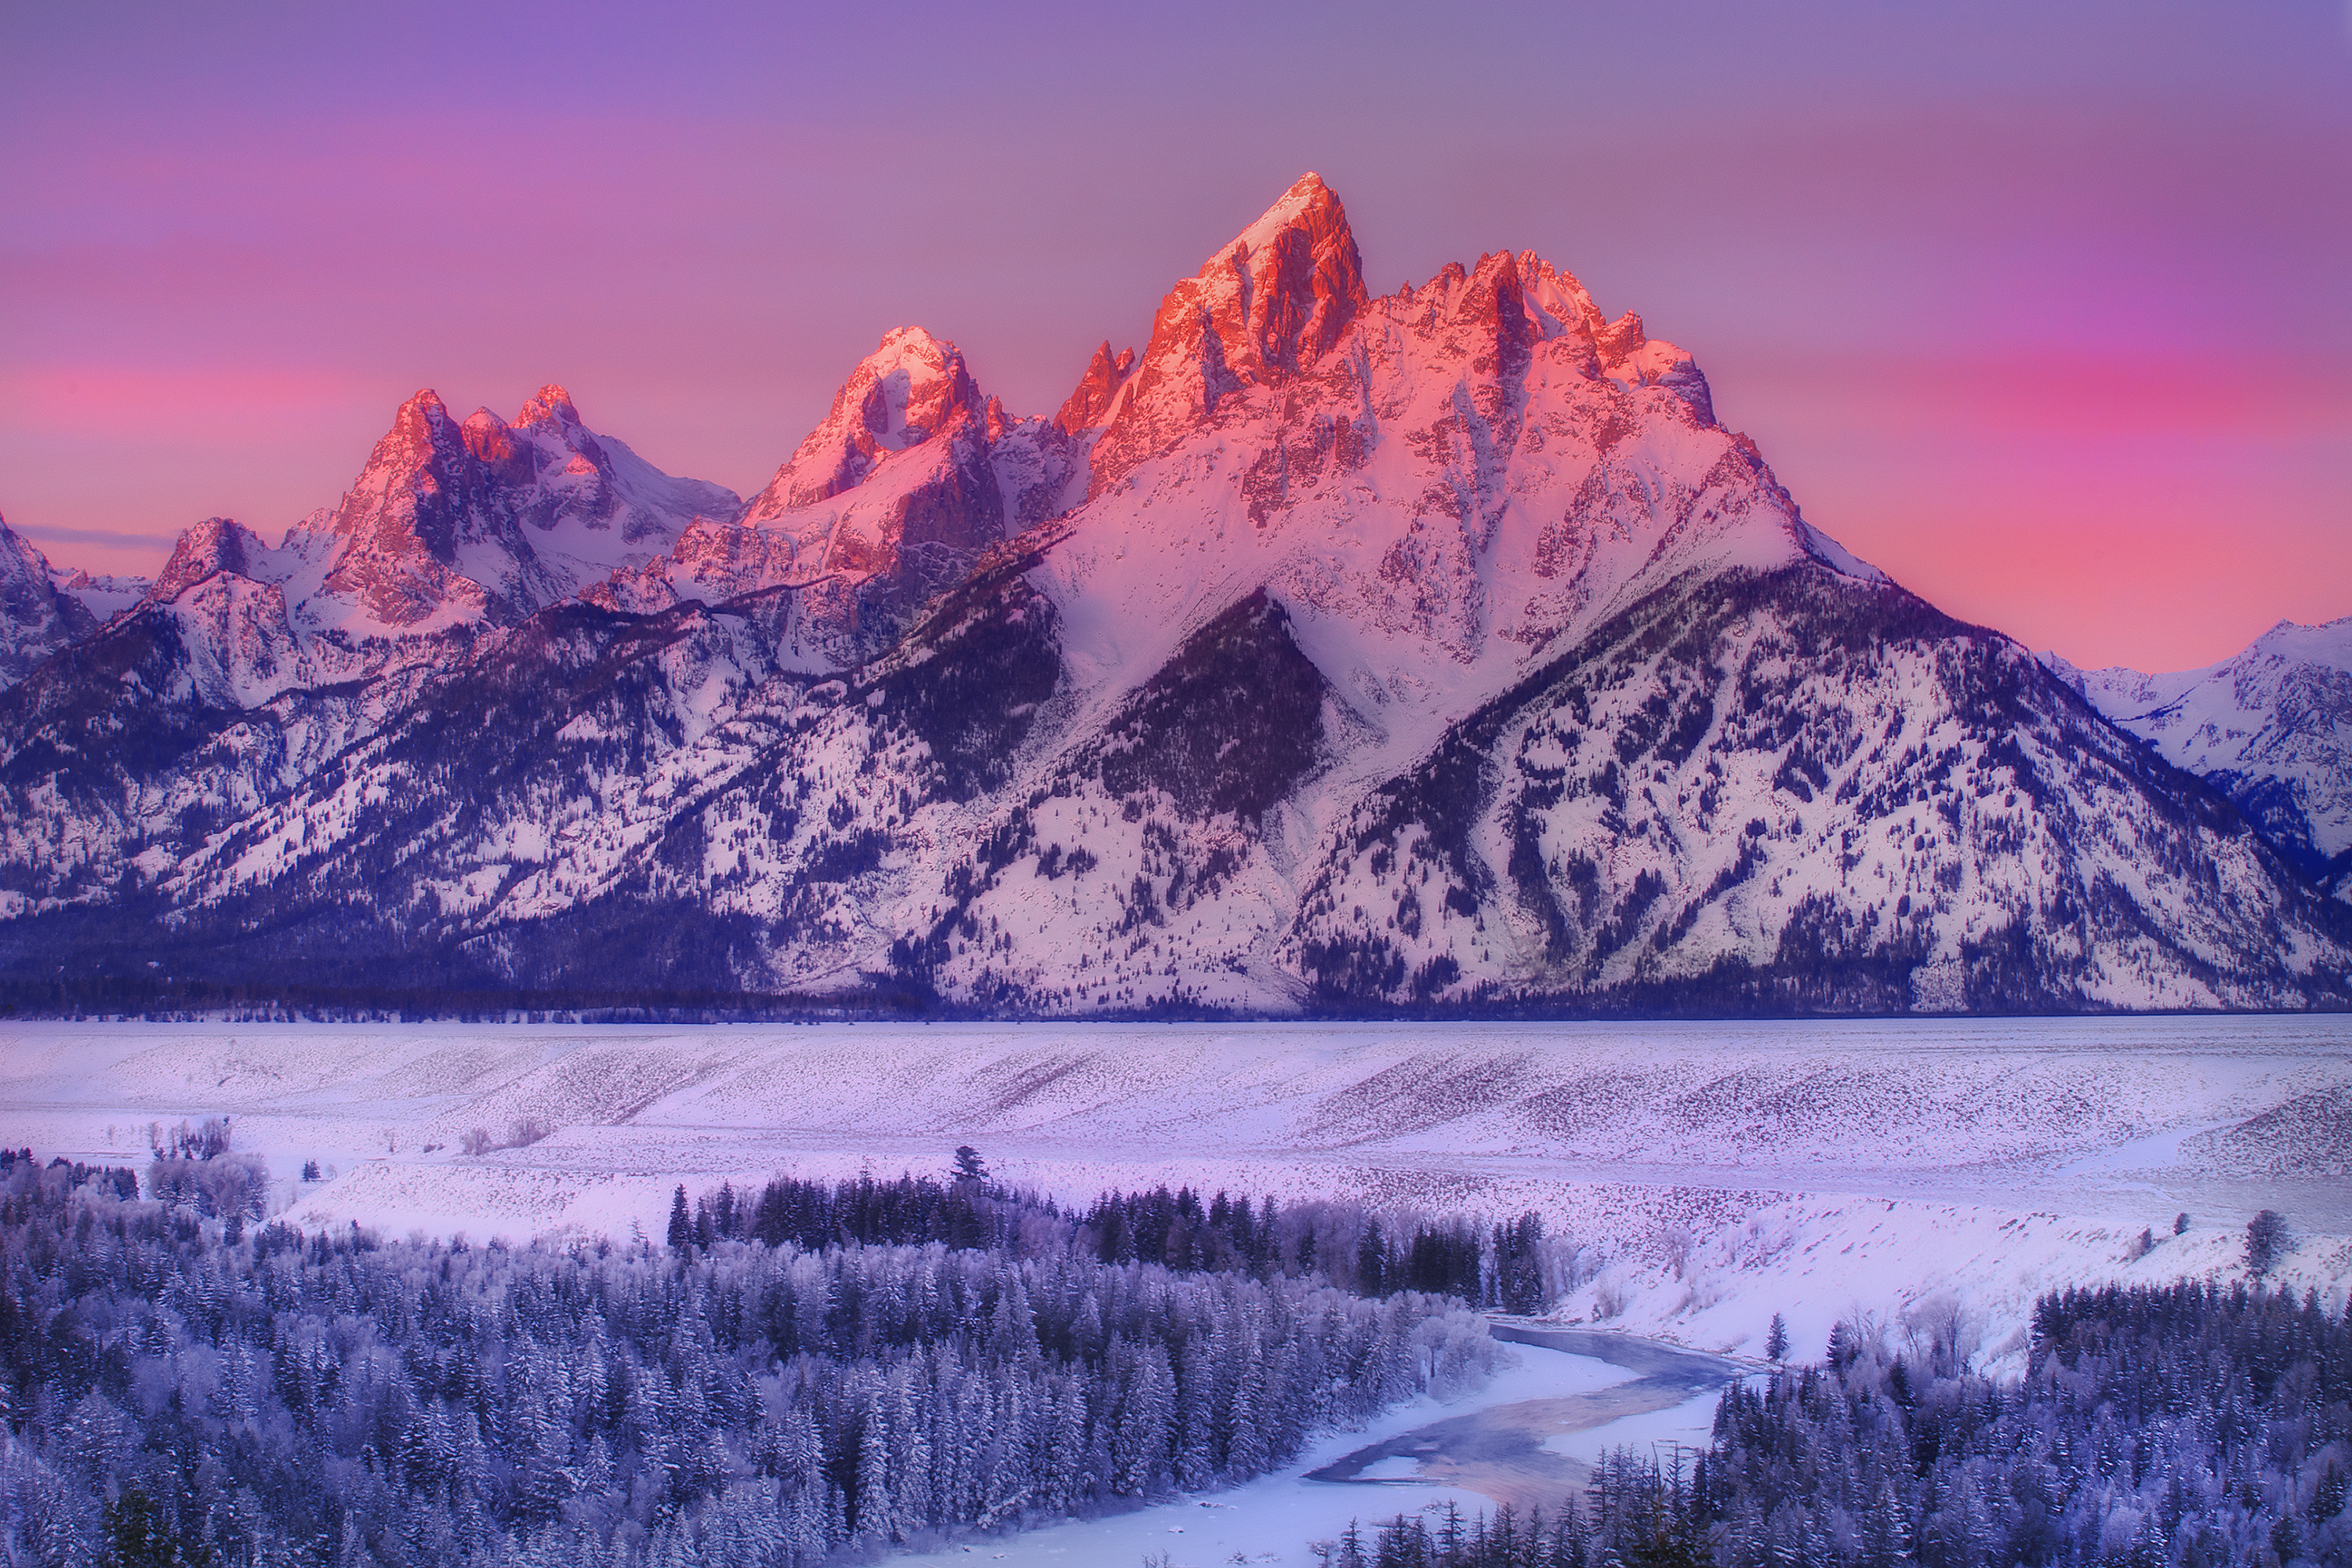 pink snow mountain wallpaper - photo #7